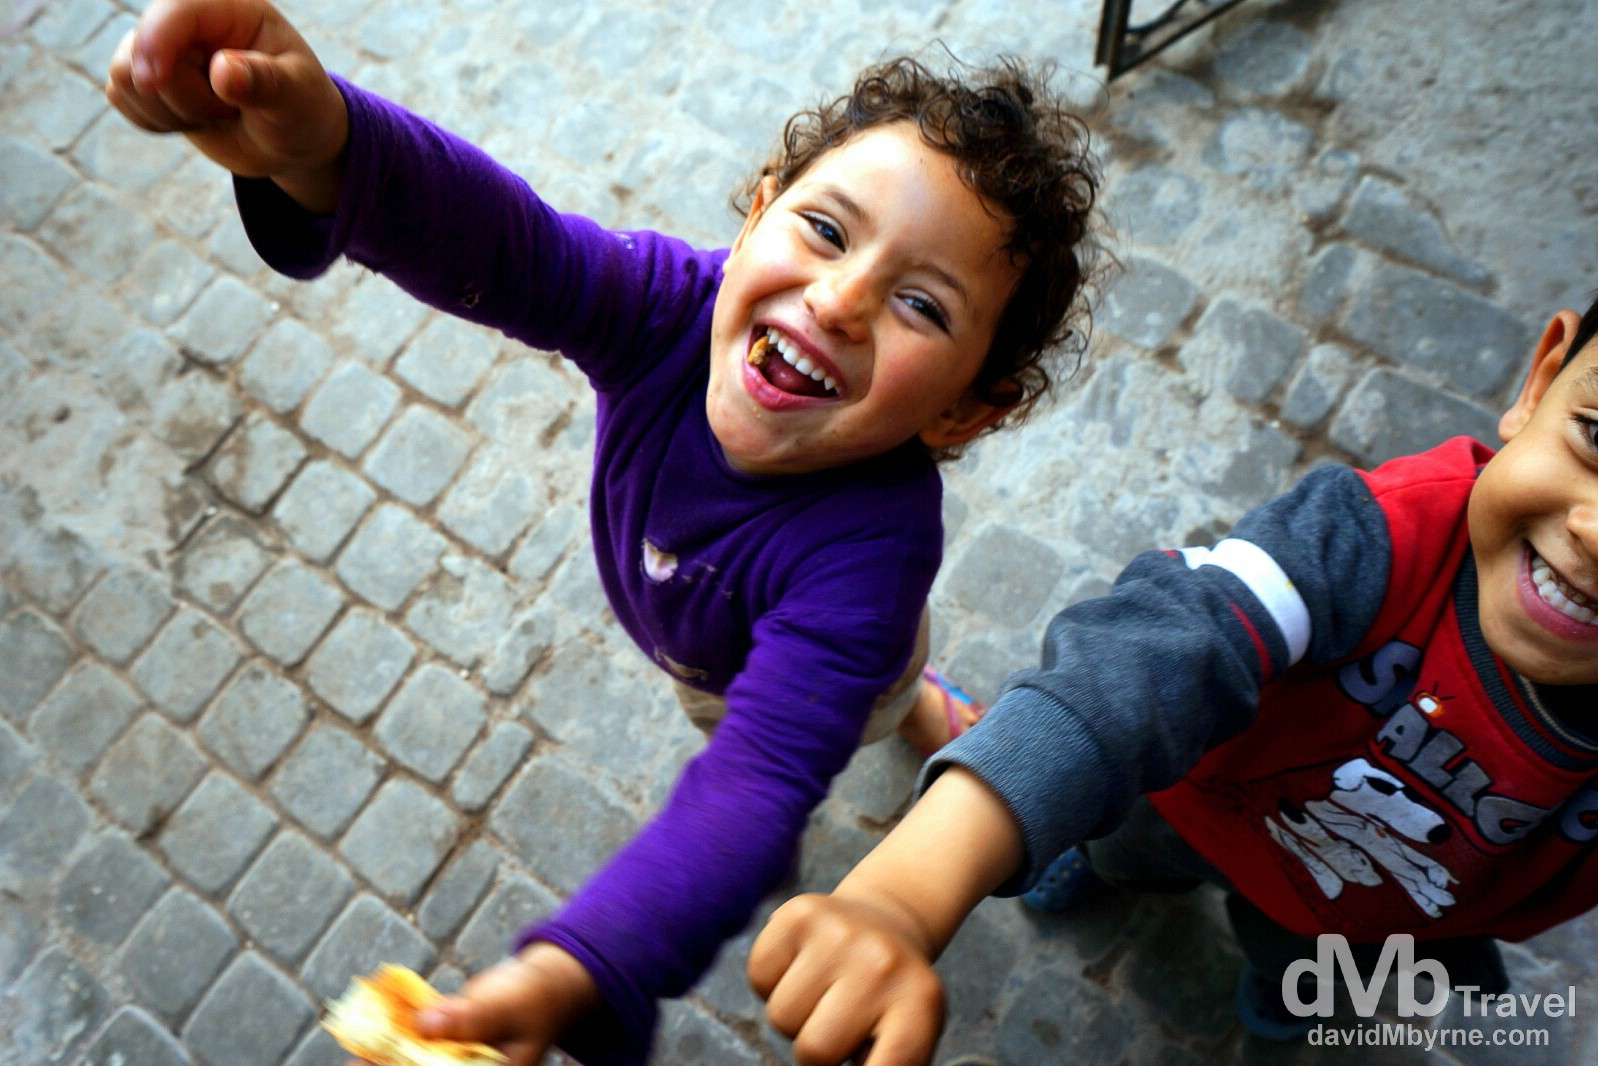 Kids in the narrow lanes of the medina in Essaouira, Morocco. May 4th.